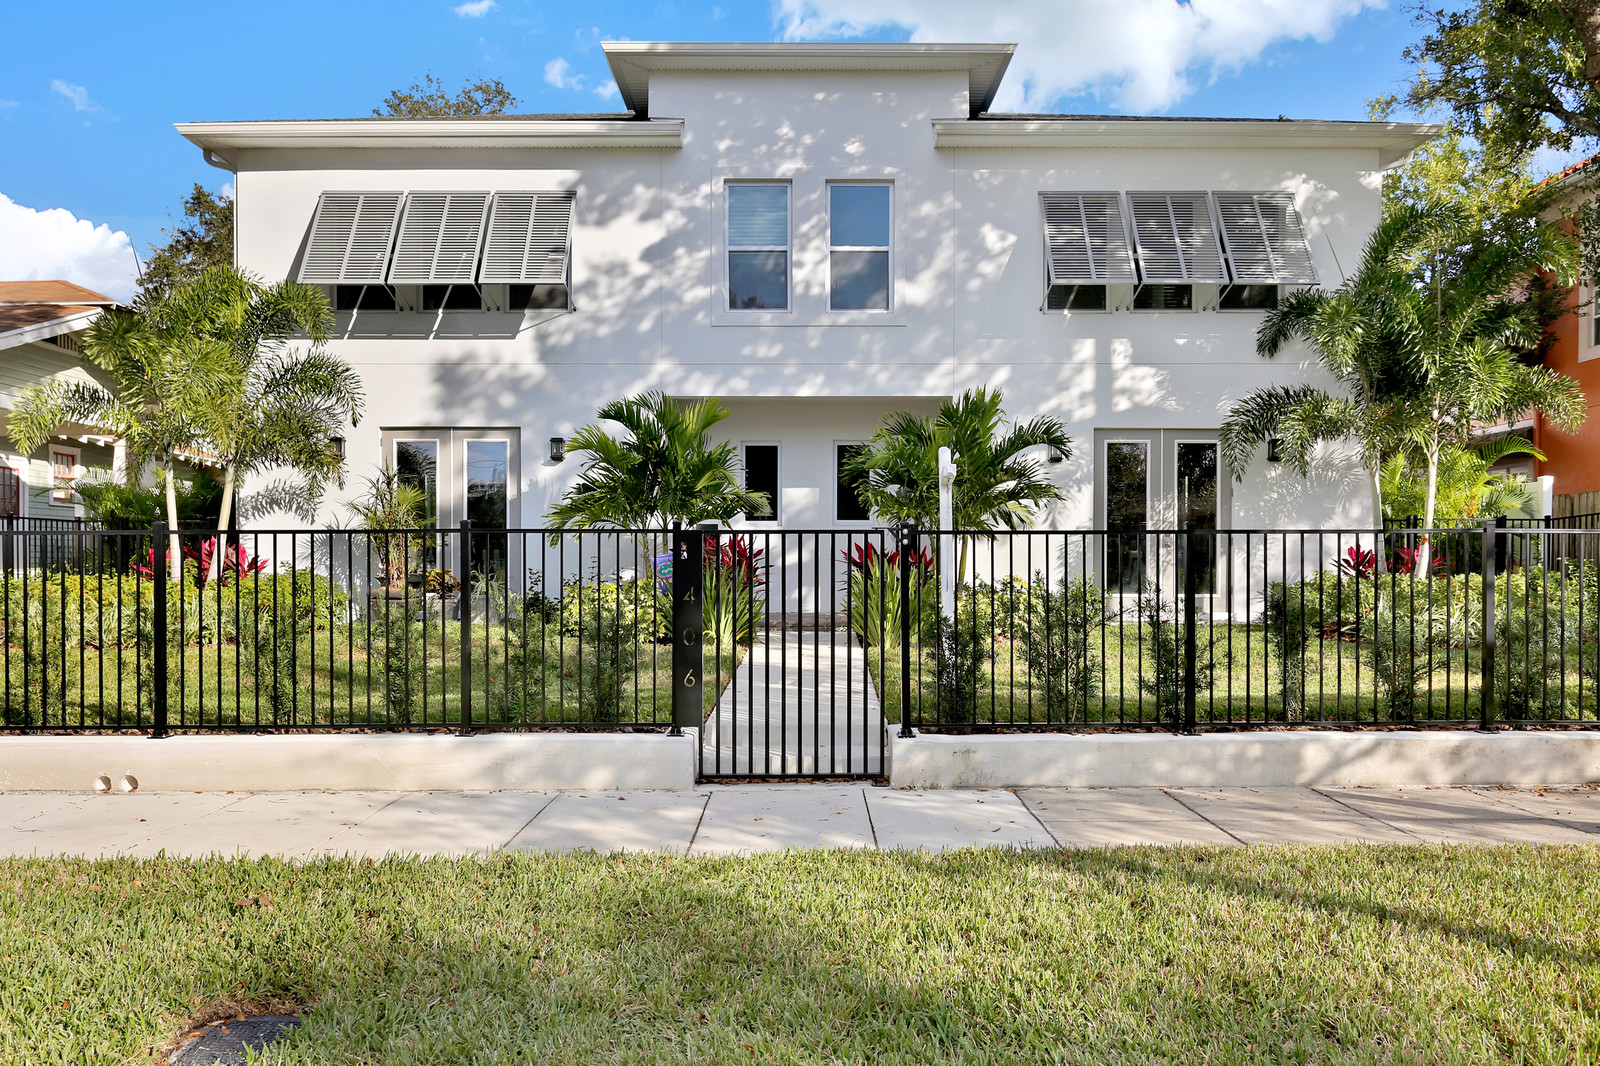 406 S Albany Ave | New Construction | Tampa, FL